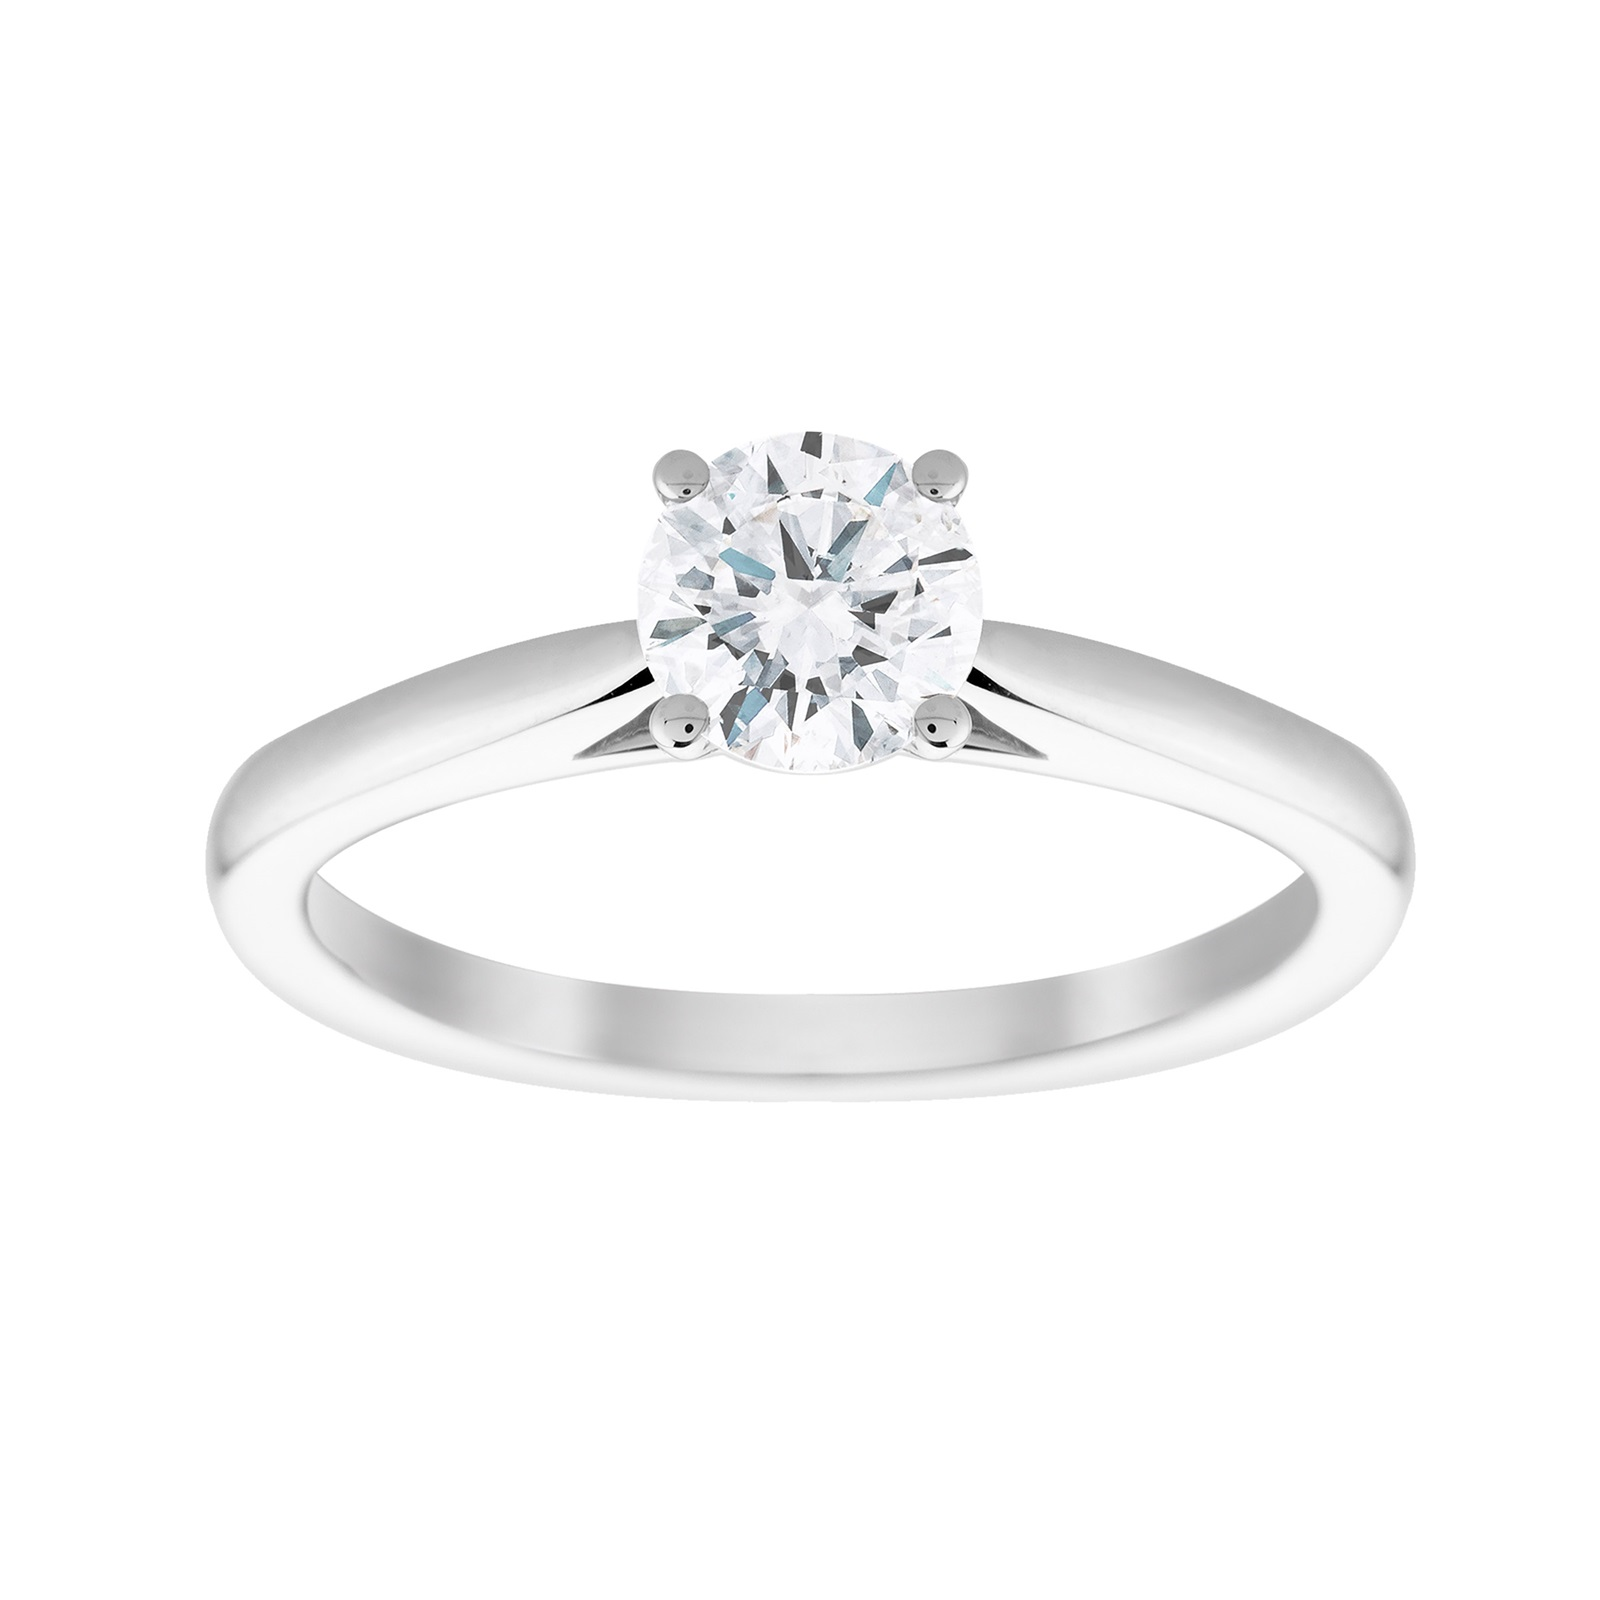 18ct White Gold 0.70cttw Solitaire Engagement Ring - Ring Size L